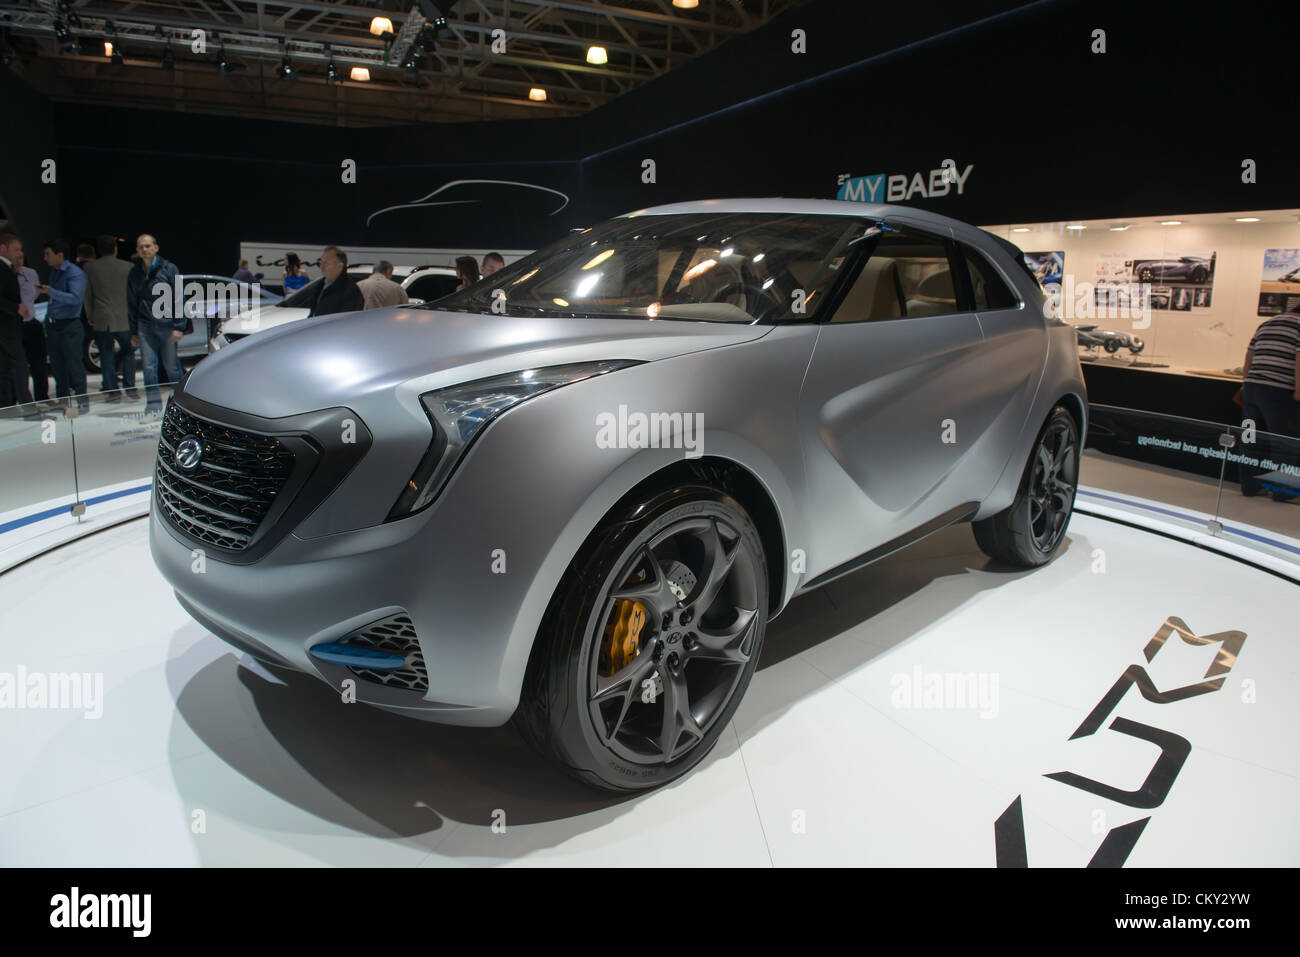 MOSCOW, RUSSIA - August 31: Moscow International Automobile Salon 2012. Hyundai Curb Concept Small Crossover - Stock Image